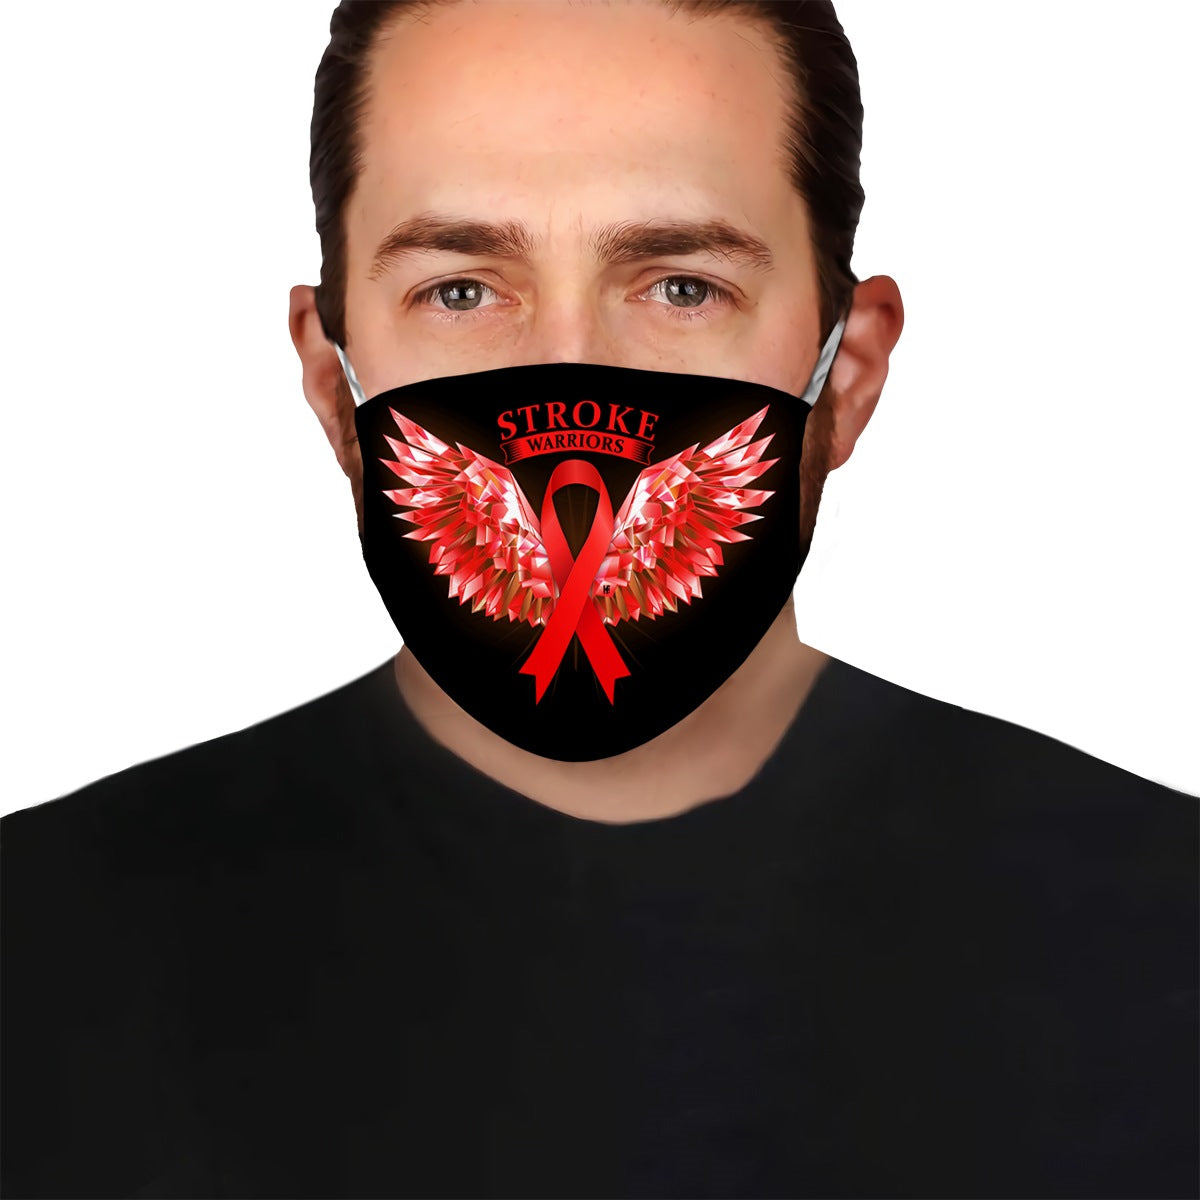 Stroke Warriors Angel Wings EZ10 0405 Face Mask - Hyperfavor